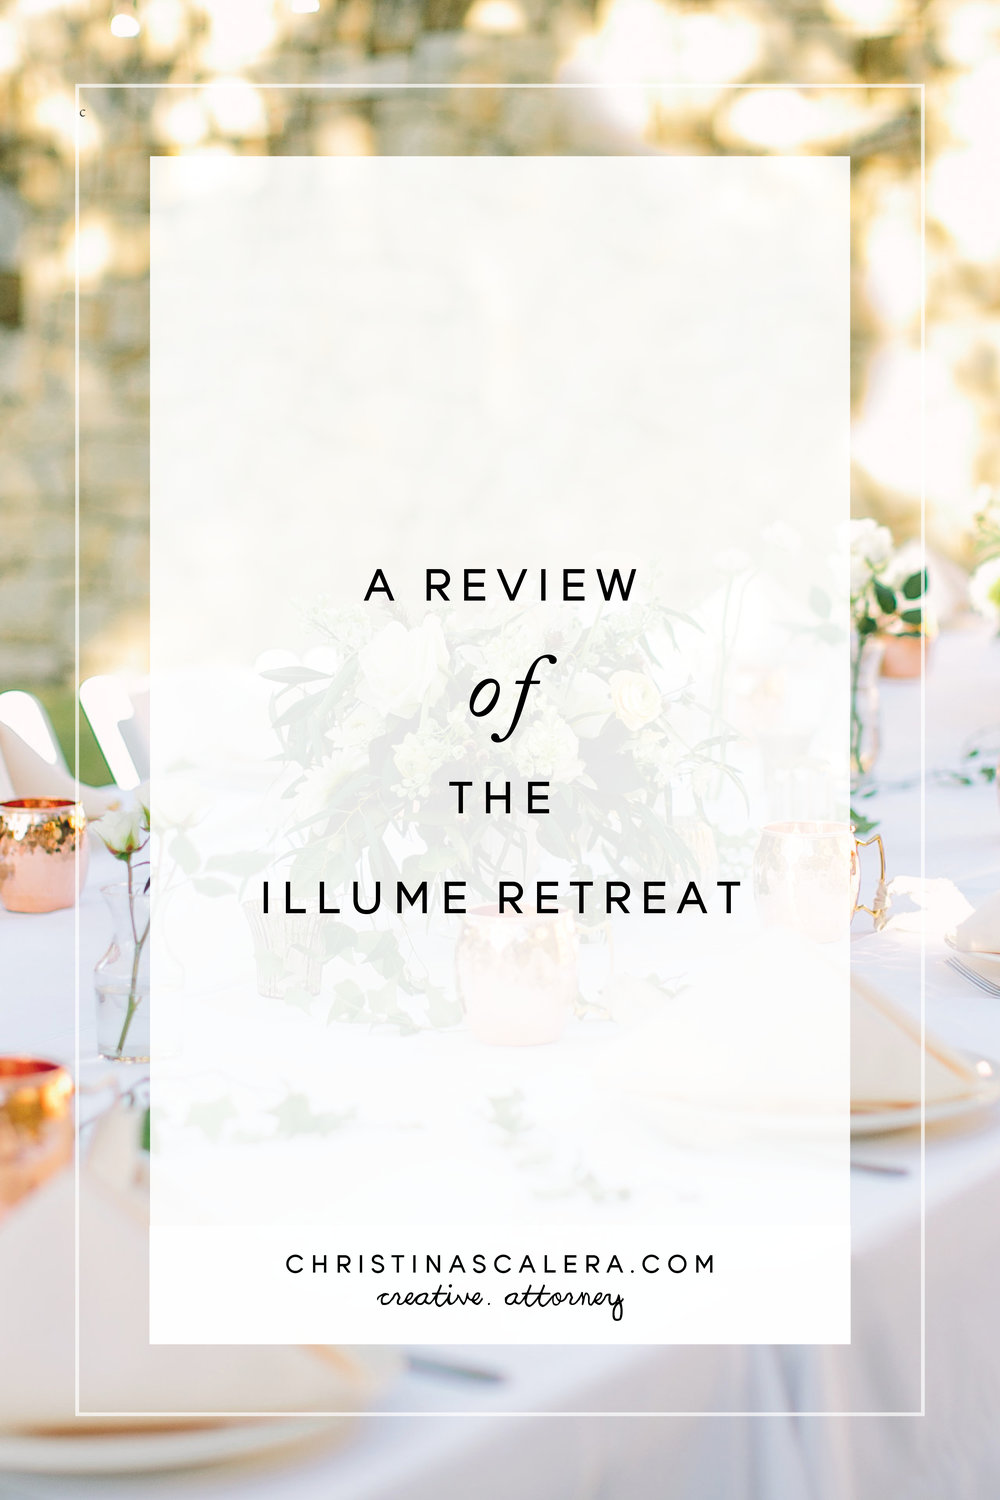 A review of the Illume Retreat!